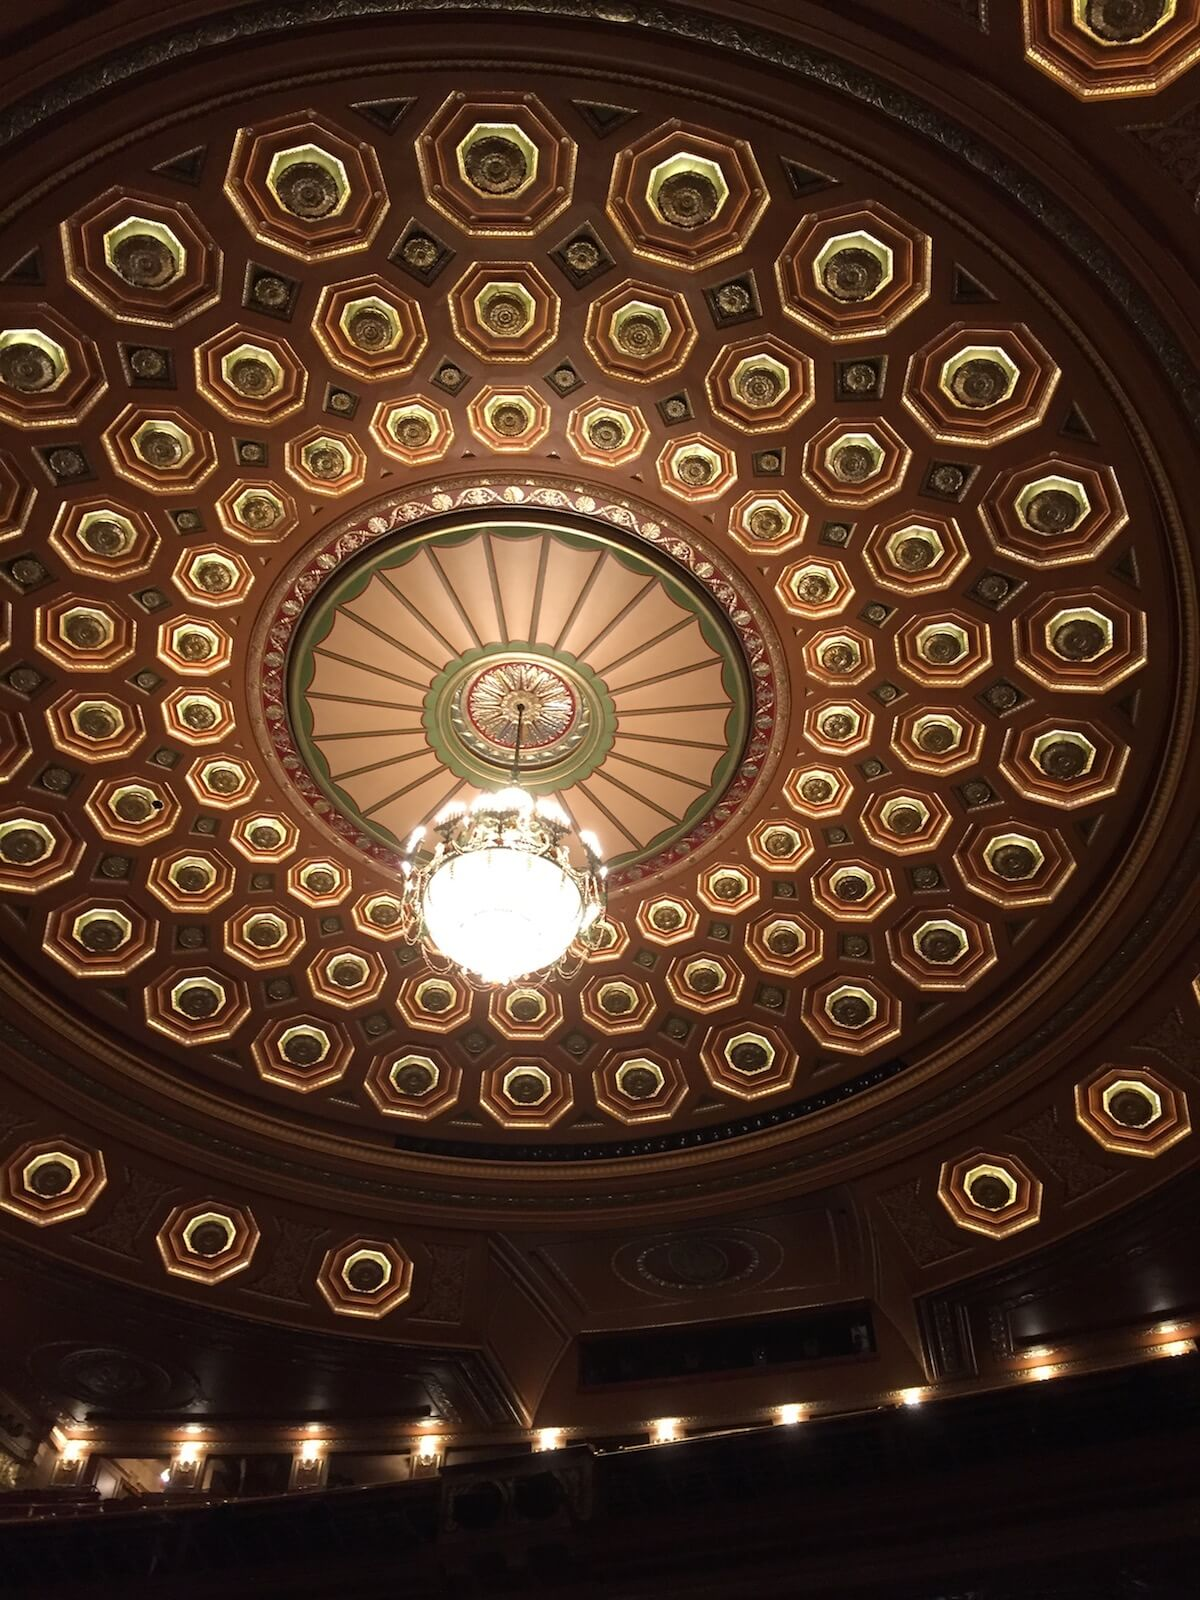 Round art deco ceiling in green and browns